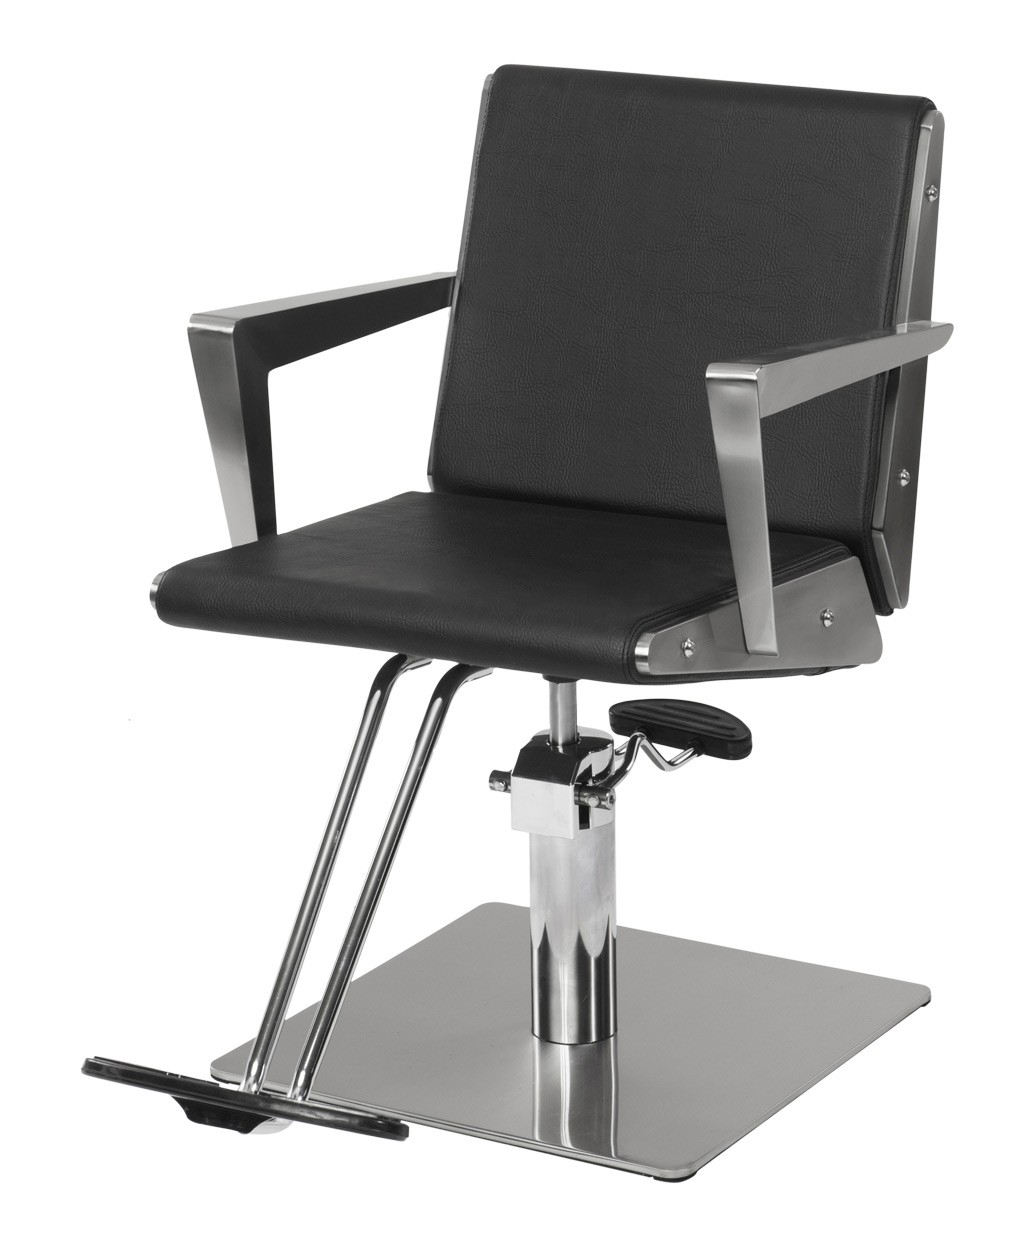 Robo styling chair for Salon chairs